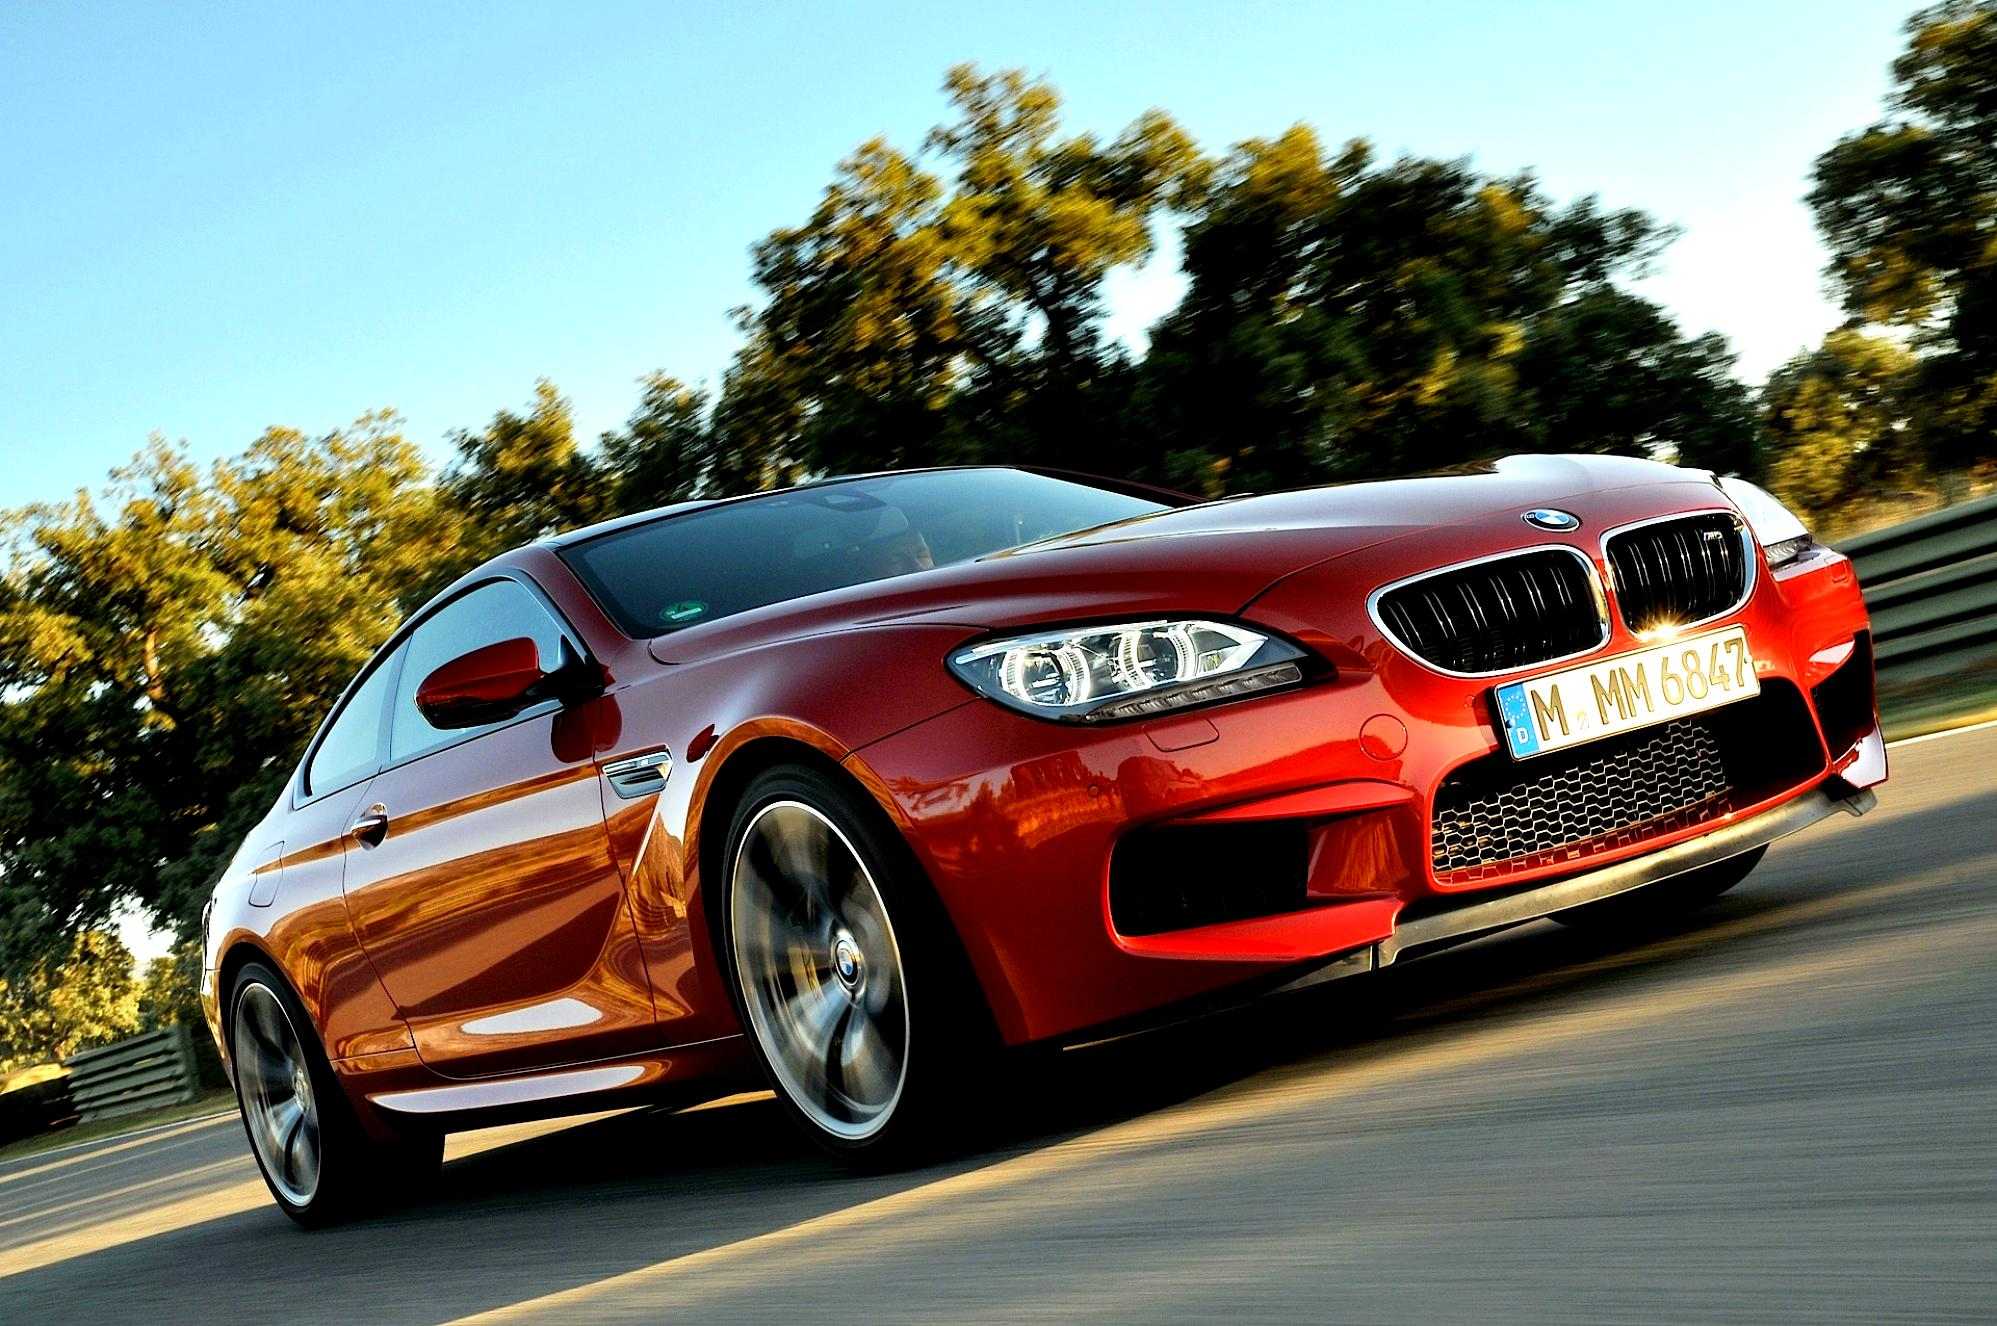 BMW M6 Coupe F13 2012 #43